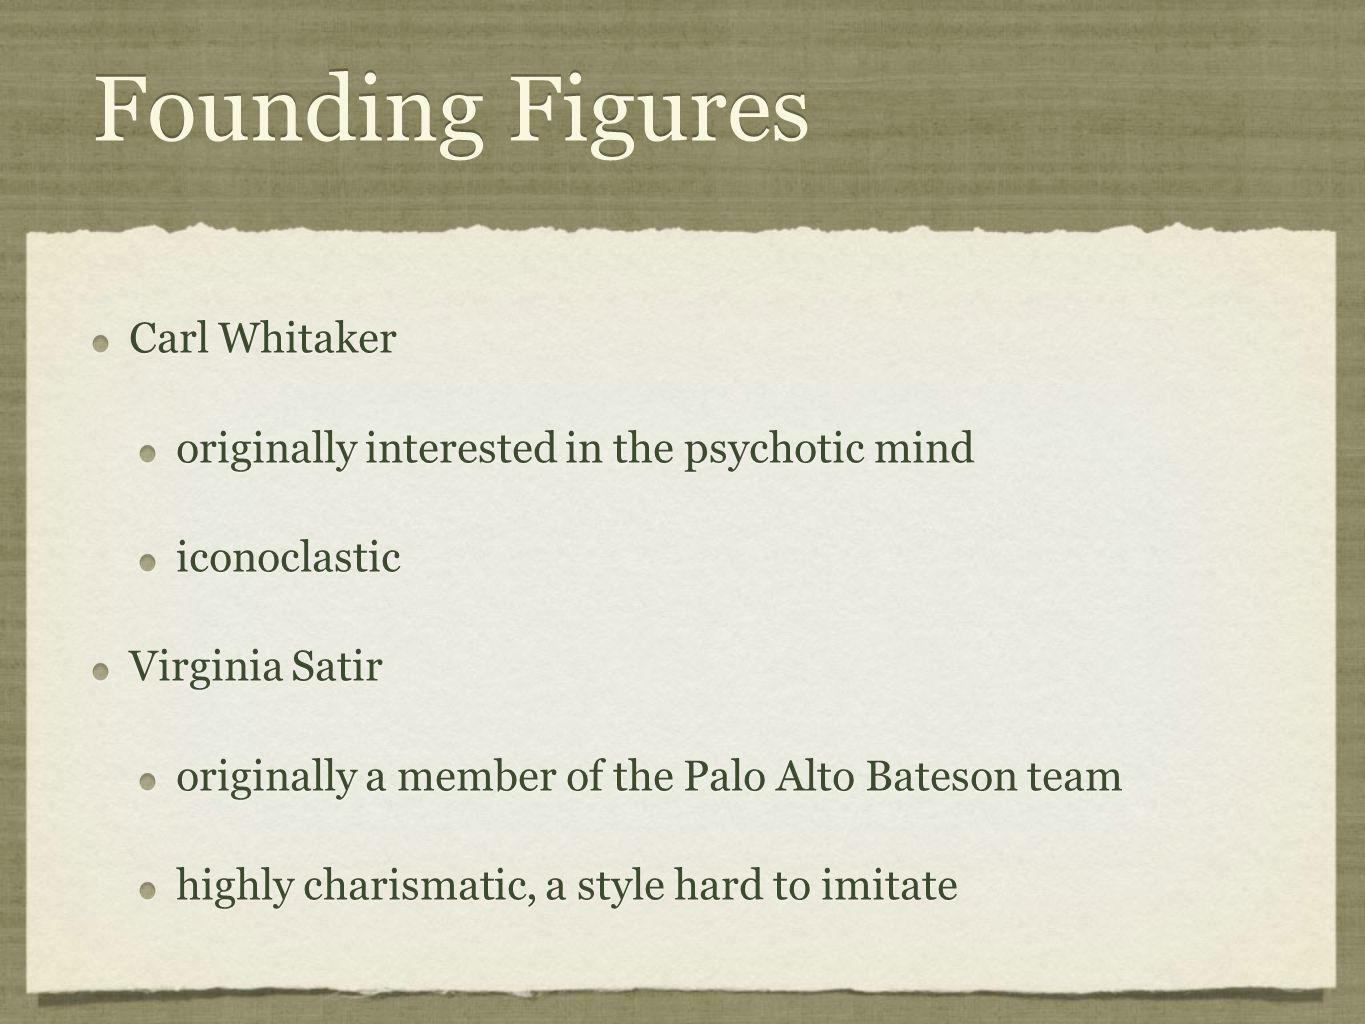 Founding Figures Carl Whitaker originally interested in the psychotic mind iconoclastic Virginia Satir originally a member of the Palo Alto Bateson team highly charismatic, a style hard to imitate Carl Whitaker originally interested in the psychotic mind iconoclastic Virginia Satir originally a member of the Palo Alto Bateson team highly charismatic, a style hard to imitate